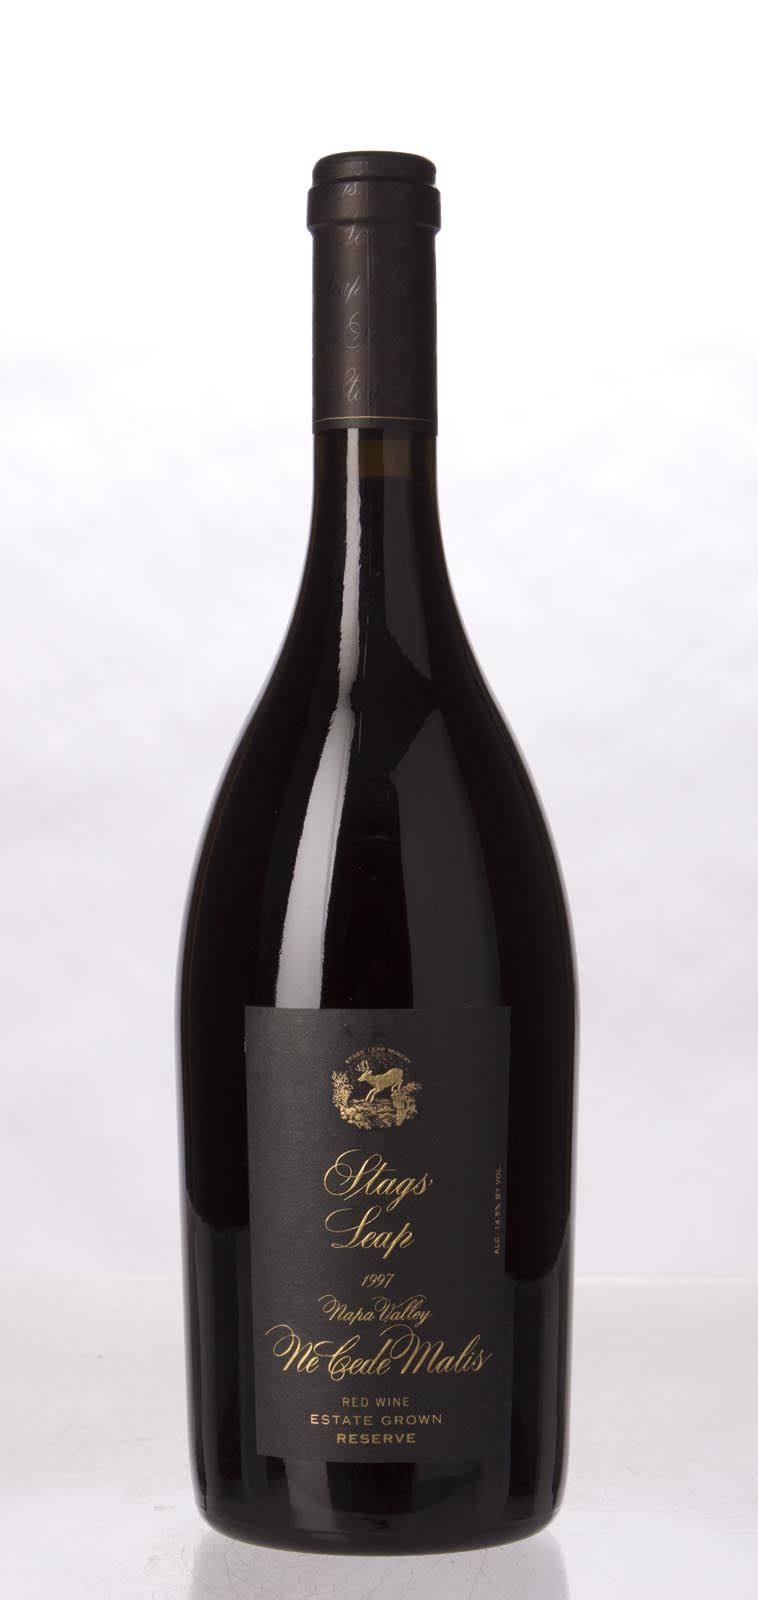 Stag`s Leap Winery Petite Sirah Ne Cede Malis 1997, 750mL () from The BPW - Merchants of rare and fine wines.